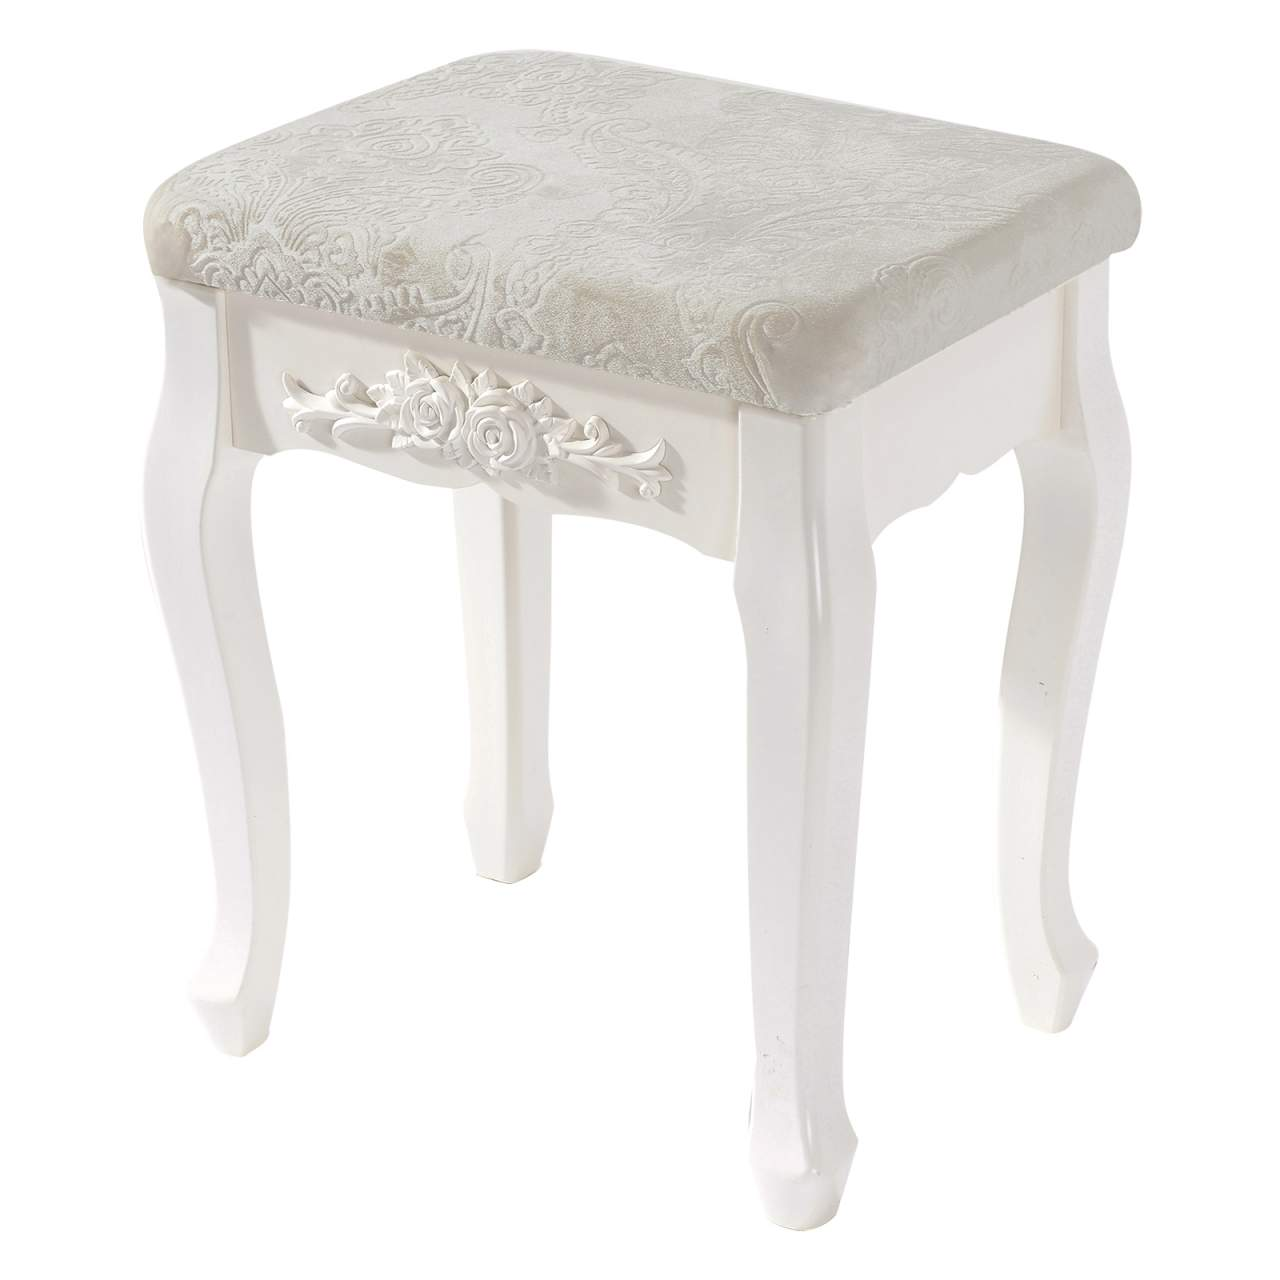 Polsterhocker Creme Creamy White Dressing Table Stool Made Of Mdf Wood | Woltu.eu